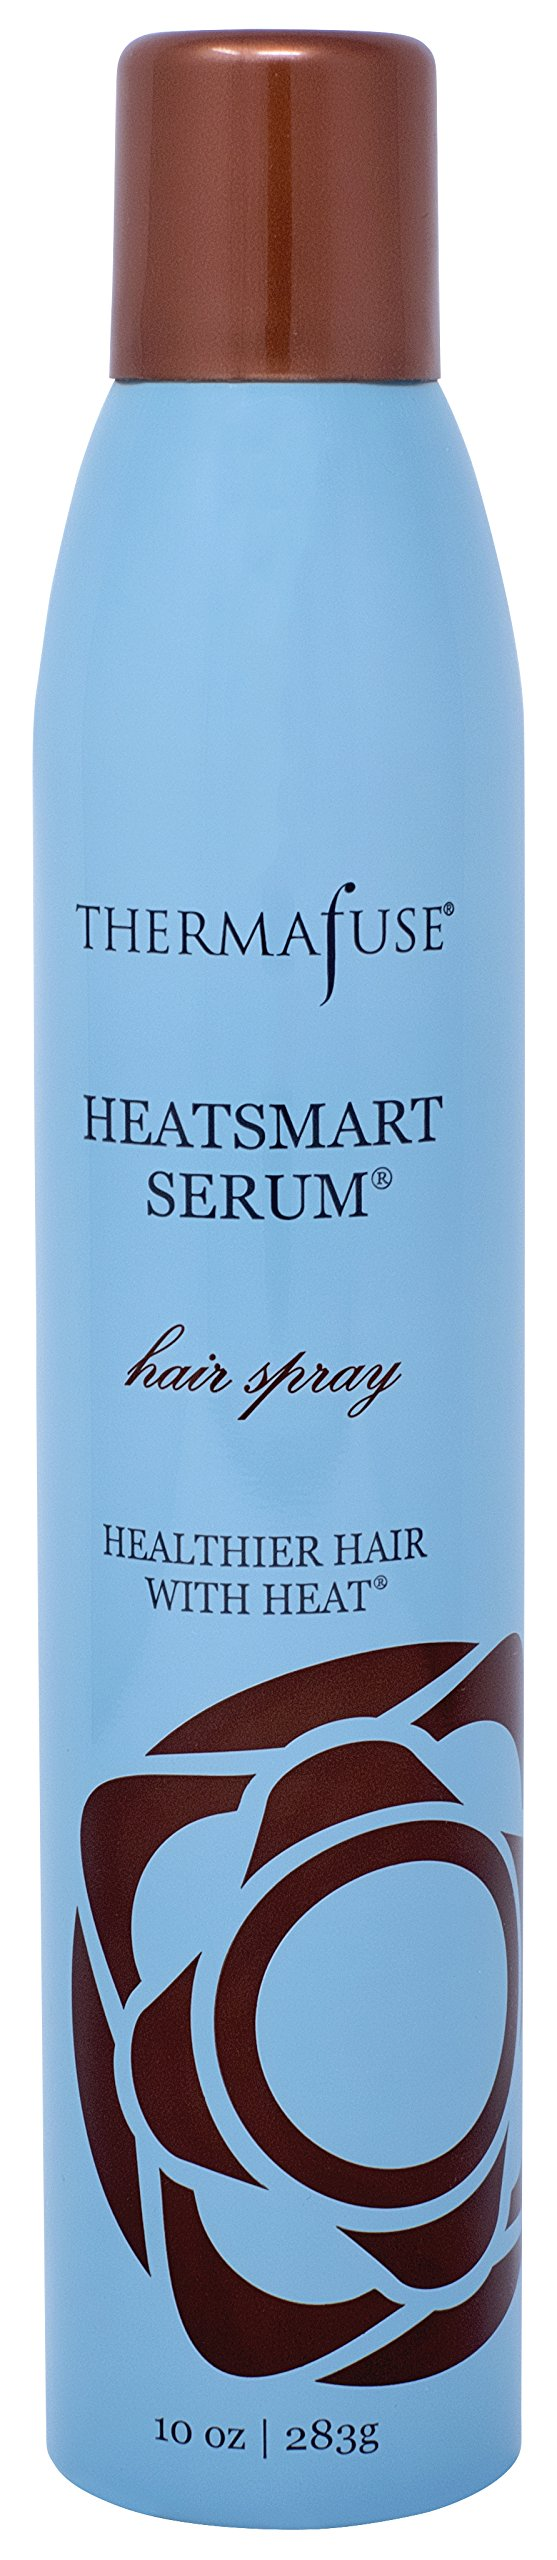 Thermafuse HeatSmart Serum Hair Spray (10 Ounce) Add Firm, Movable Hold, Certified Organic Oils. Gives Natural Reflective Shine to Dull, Damaged, Dry, Over Processed Hair Types.